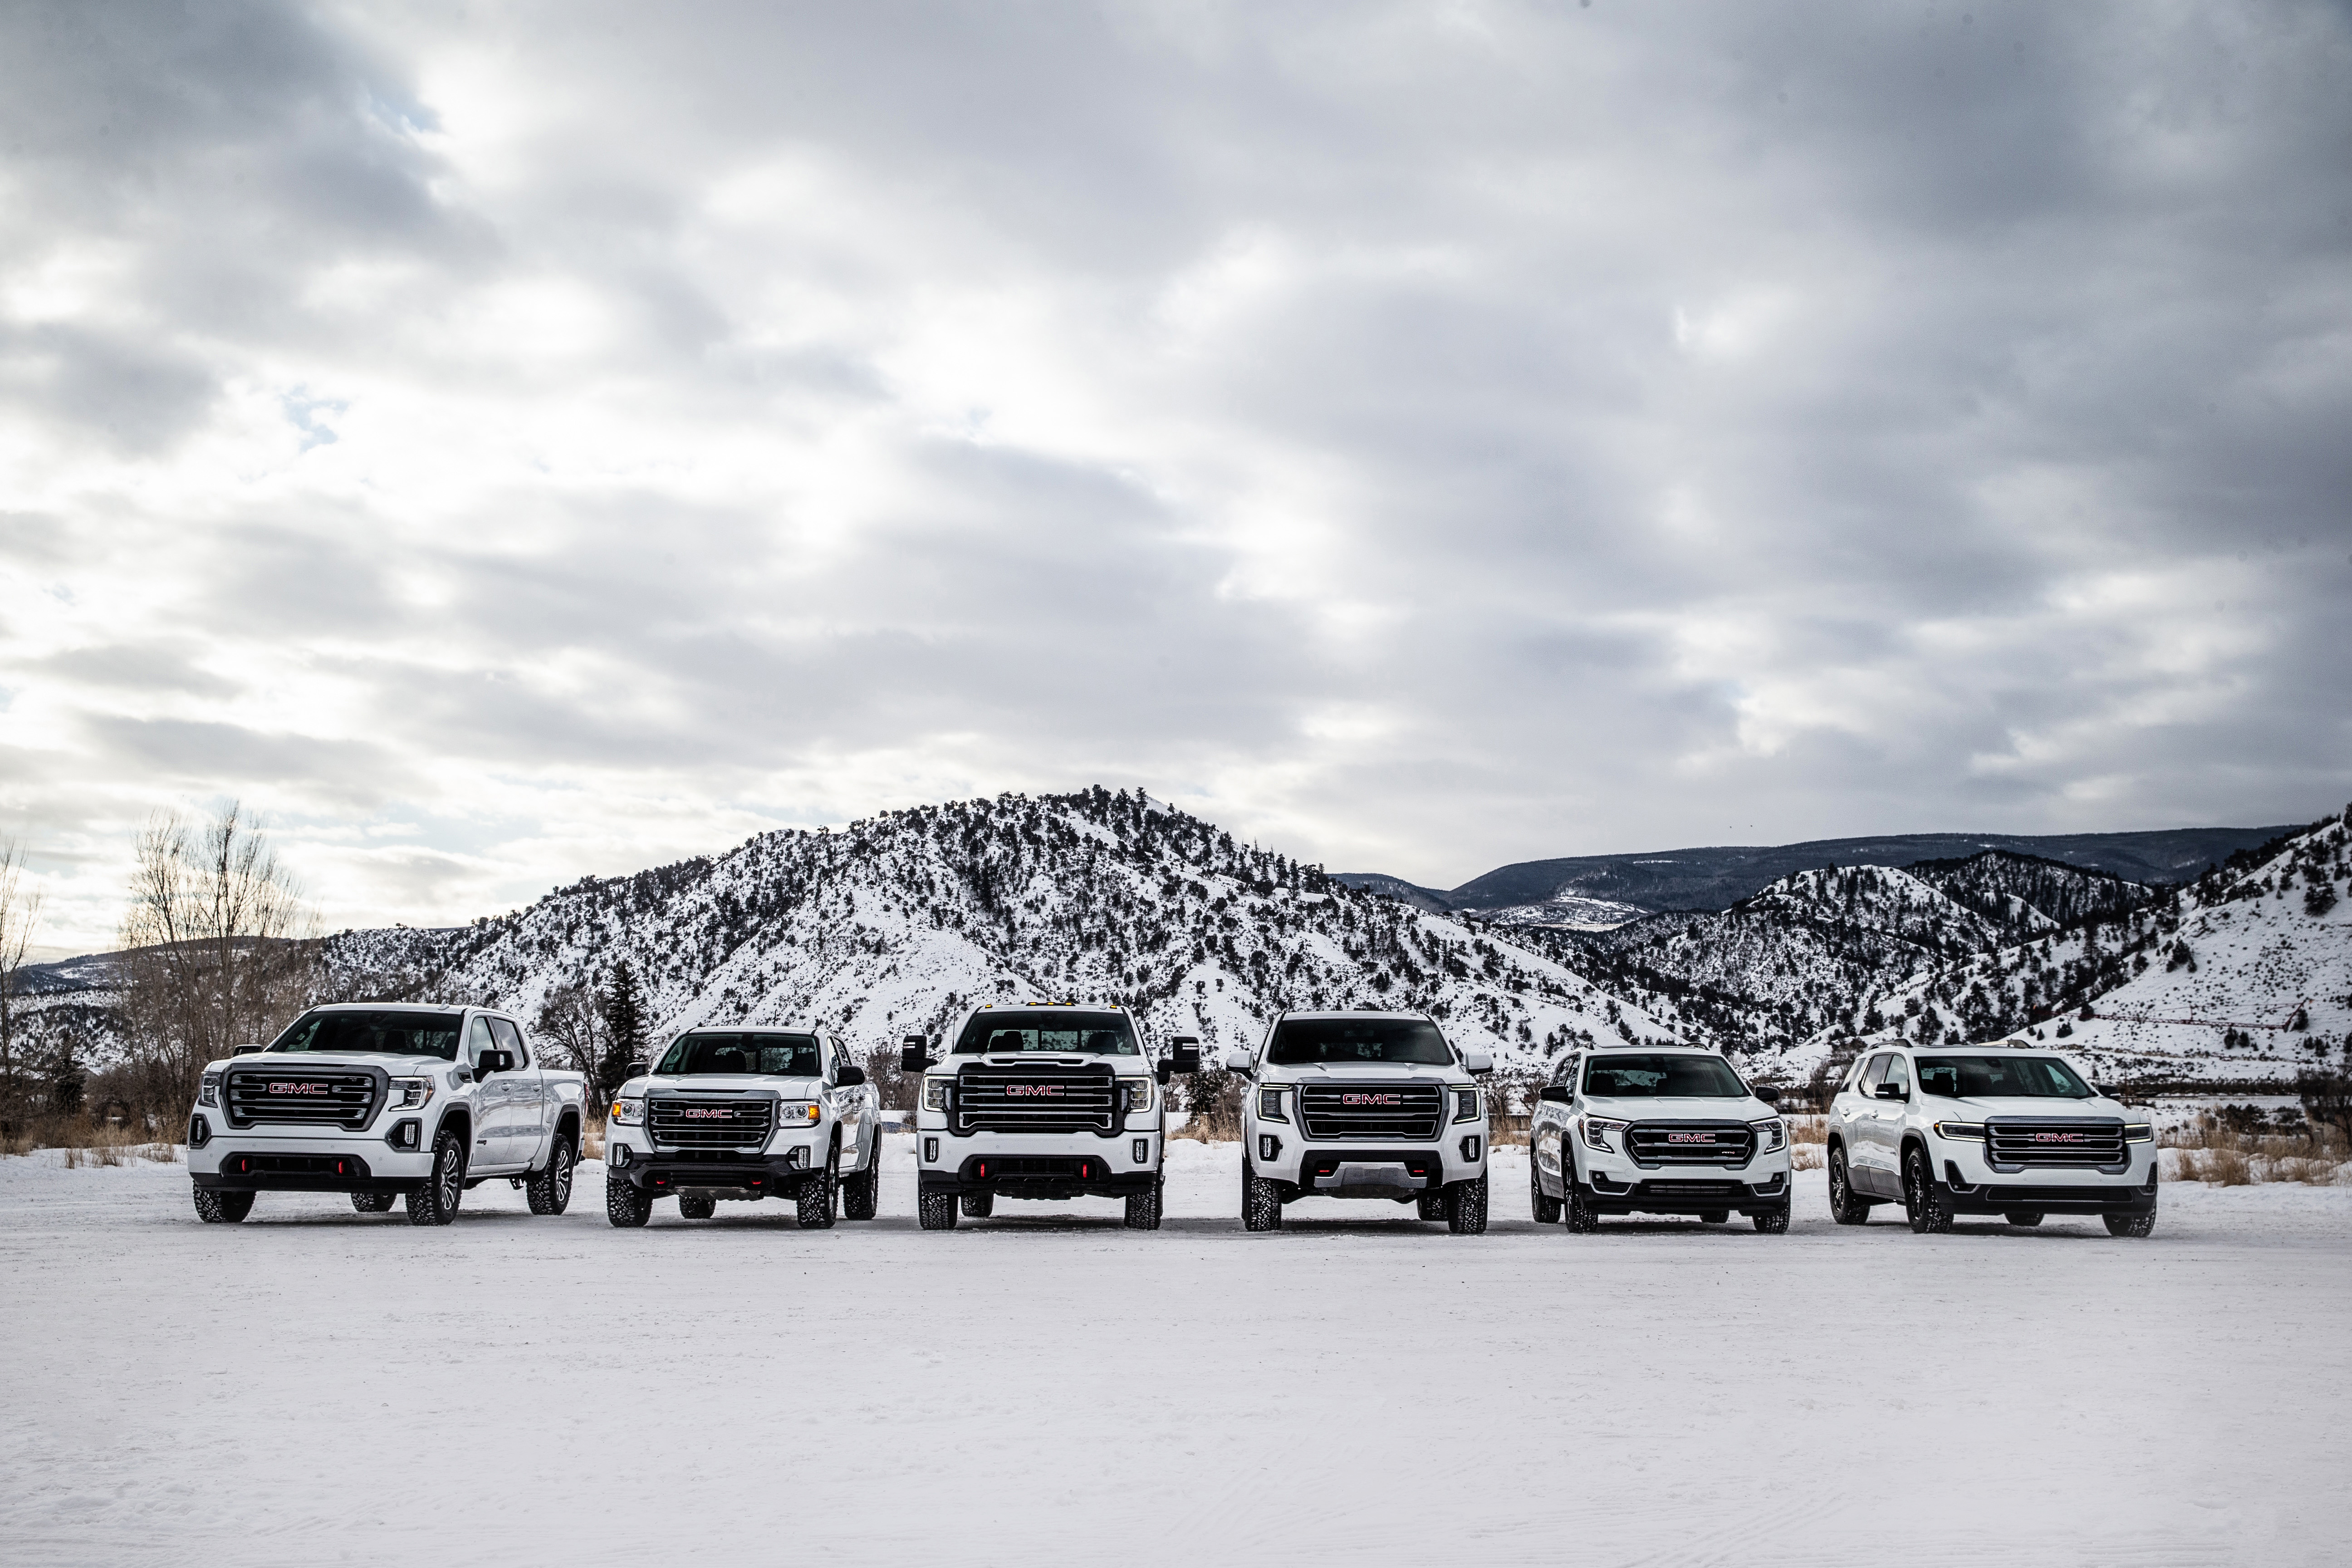 2021 GMC Yukon: First Look at an Off-Road-Capable Luxury SUV